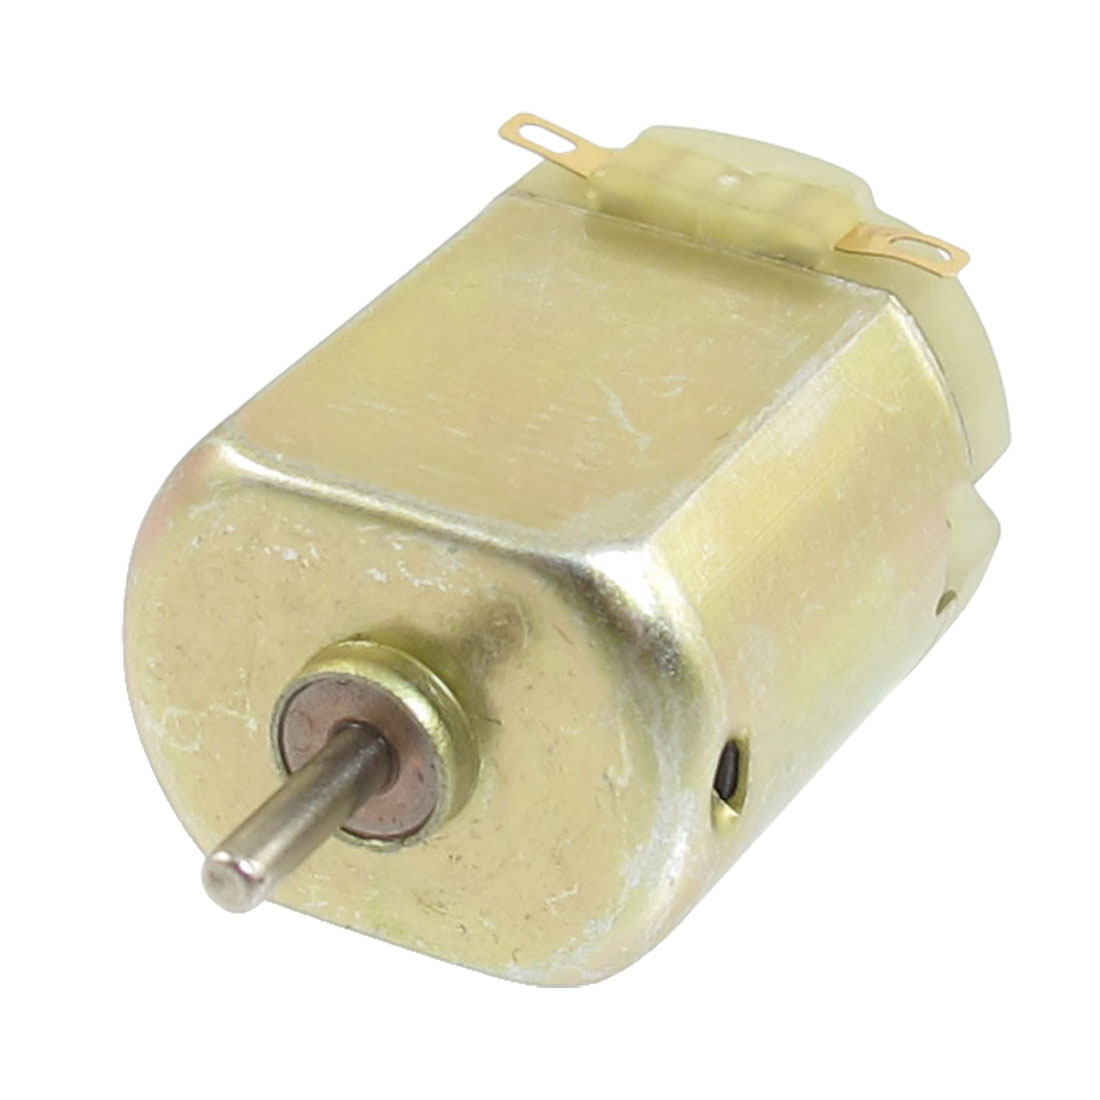 DC 3V 0.22A 12000RPM Rotary Speed 2 Terminals Electric Magnetic Gear Motor